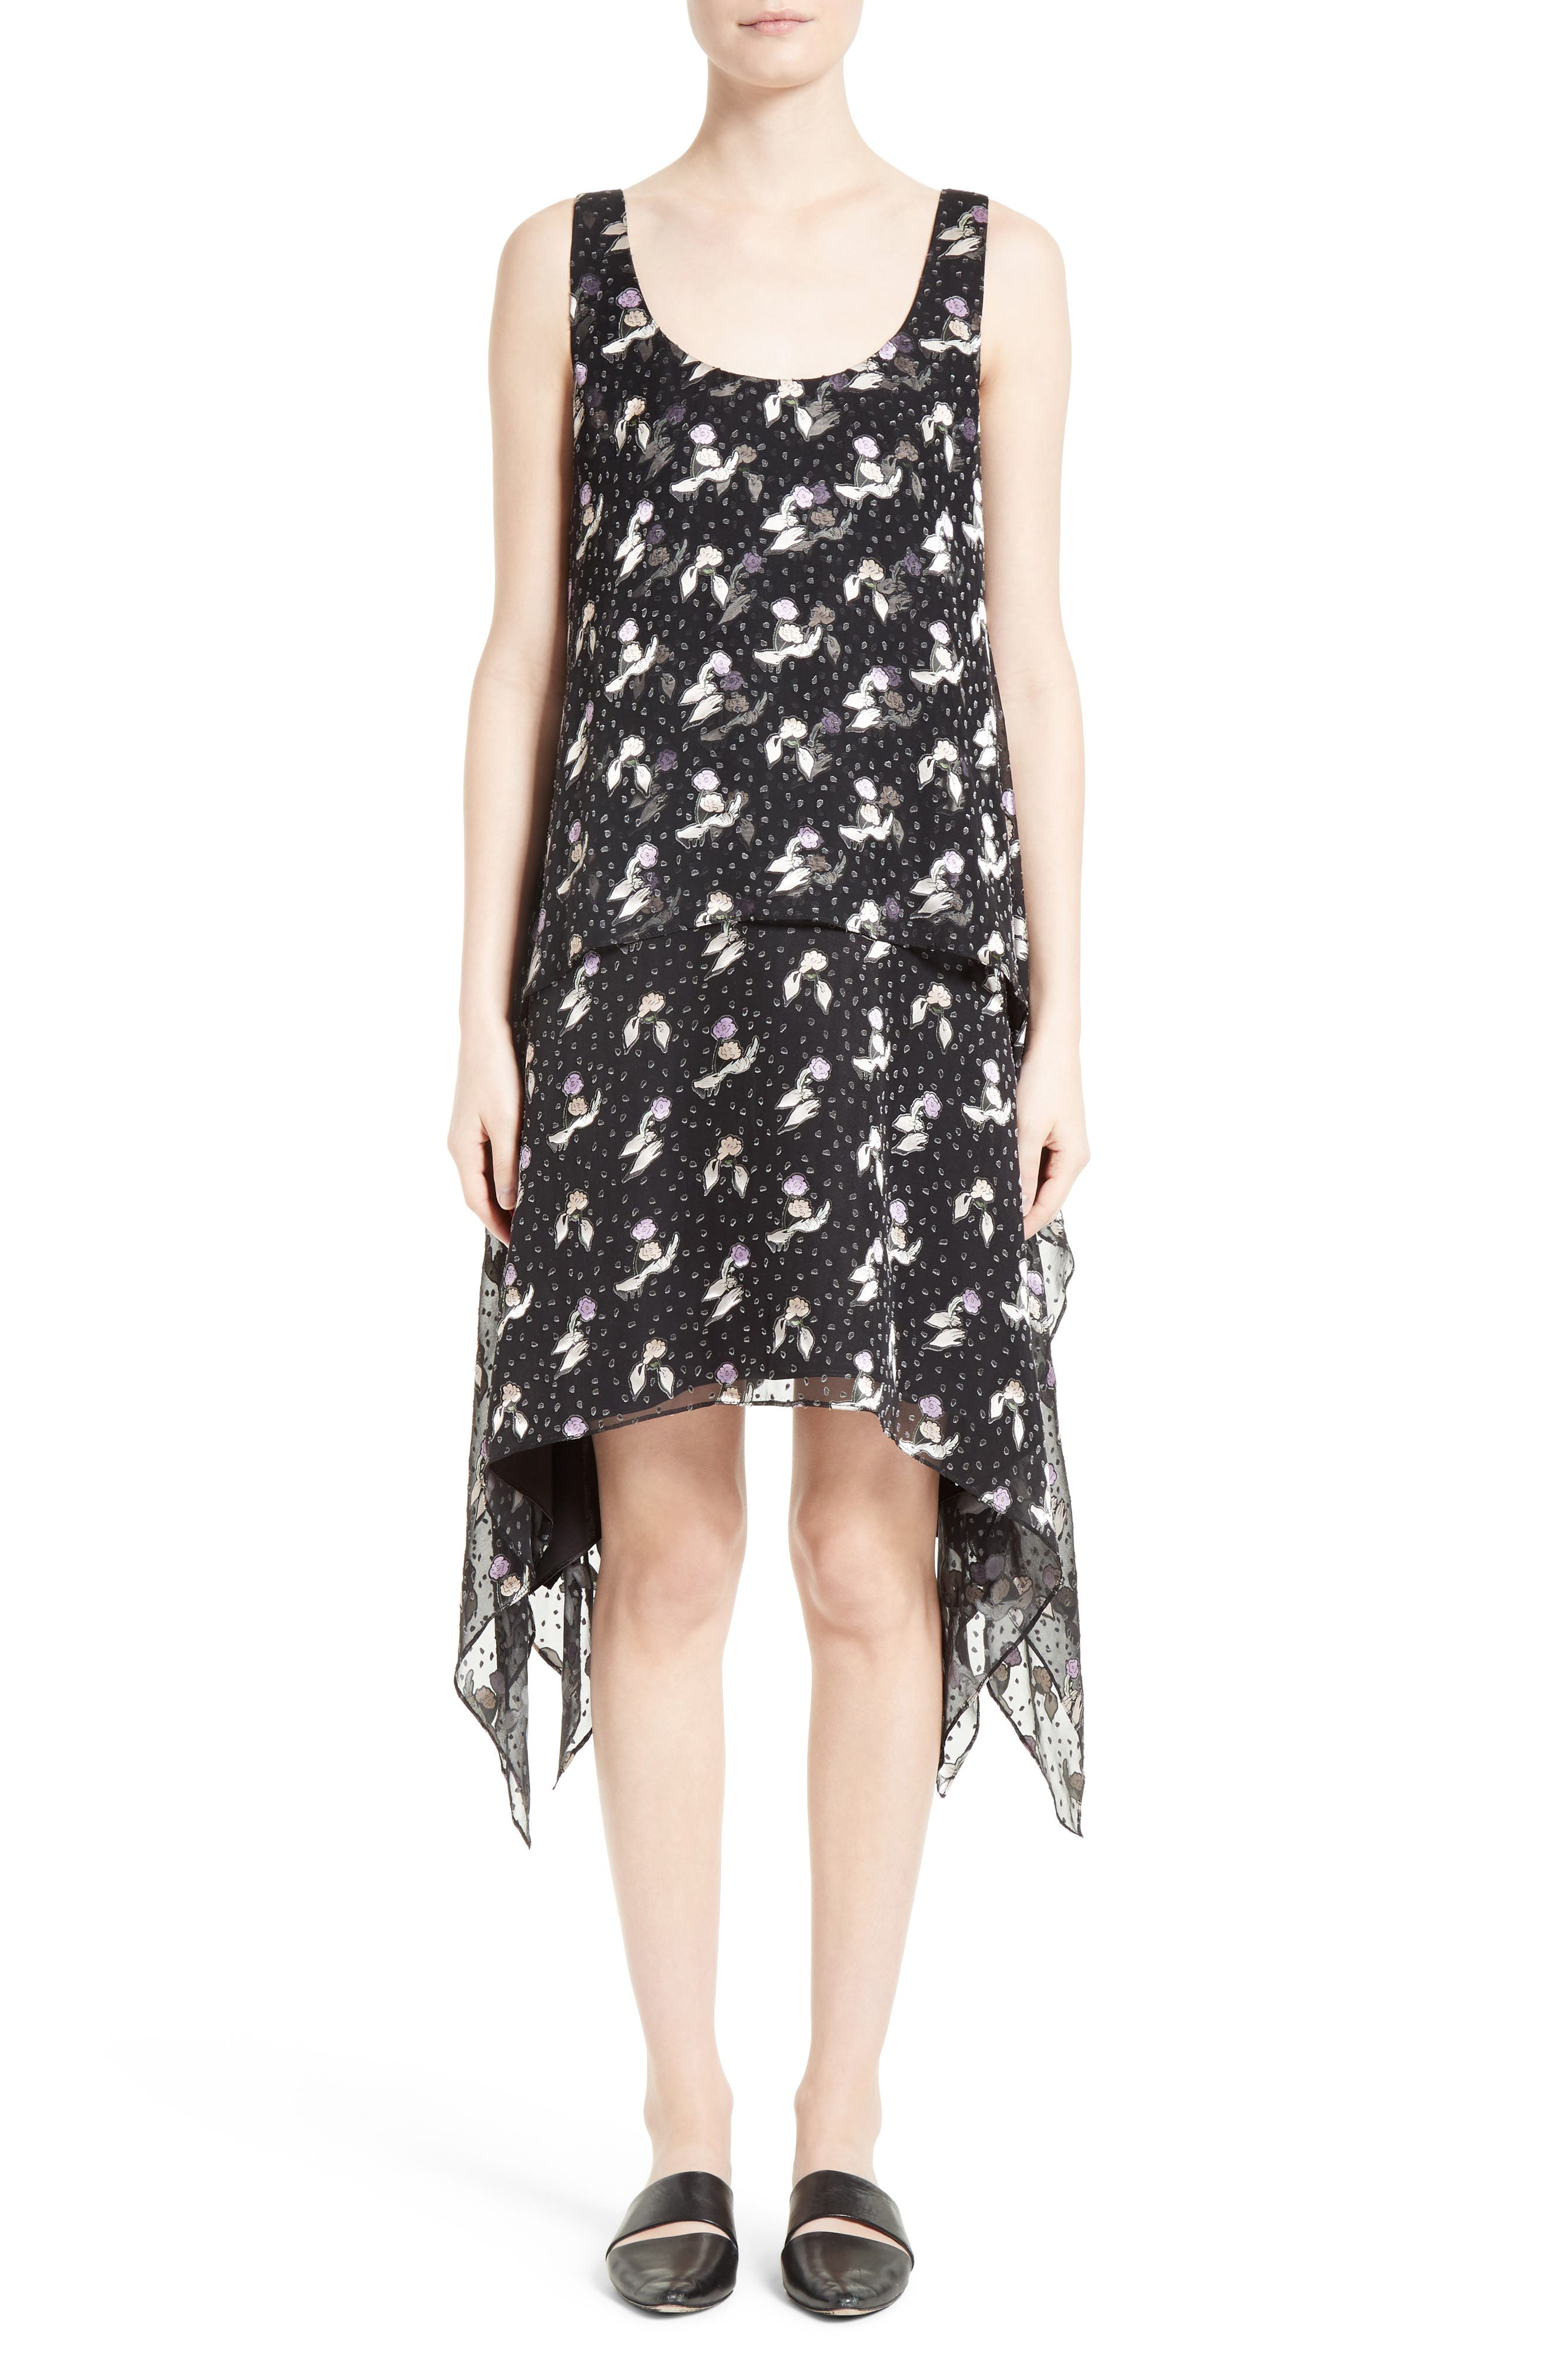 OPENING CEREMONY Gestures Burnout Handkerchief Dress